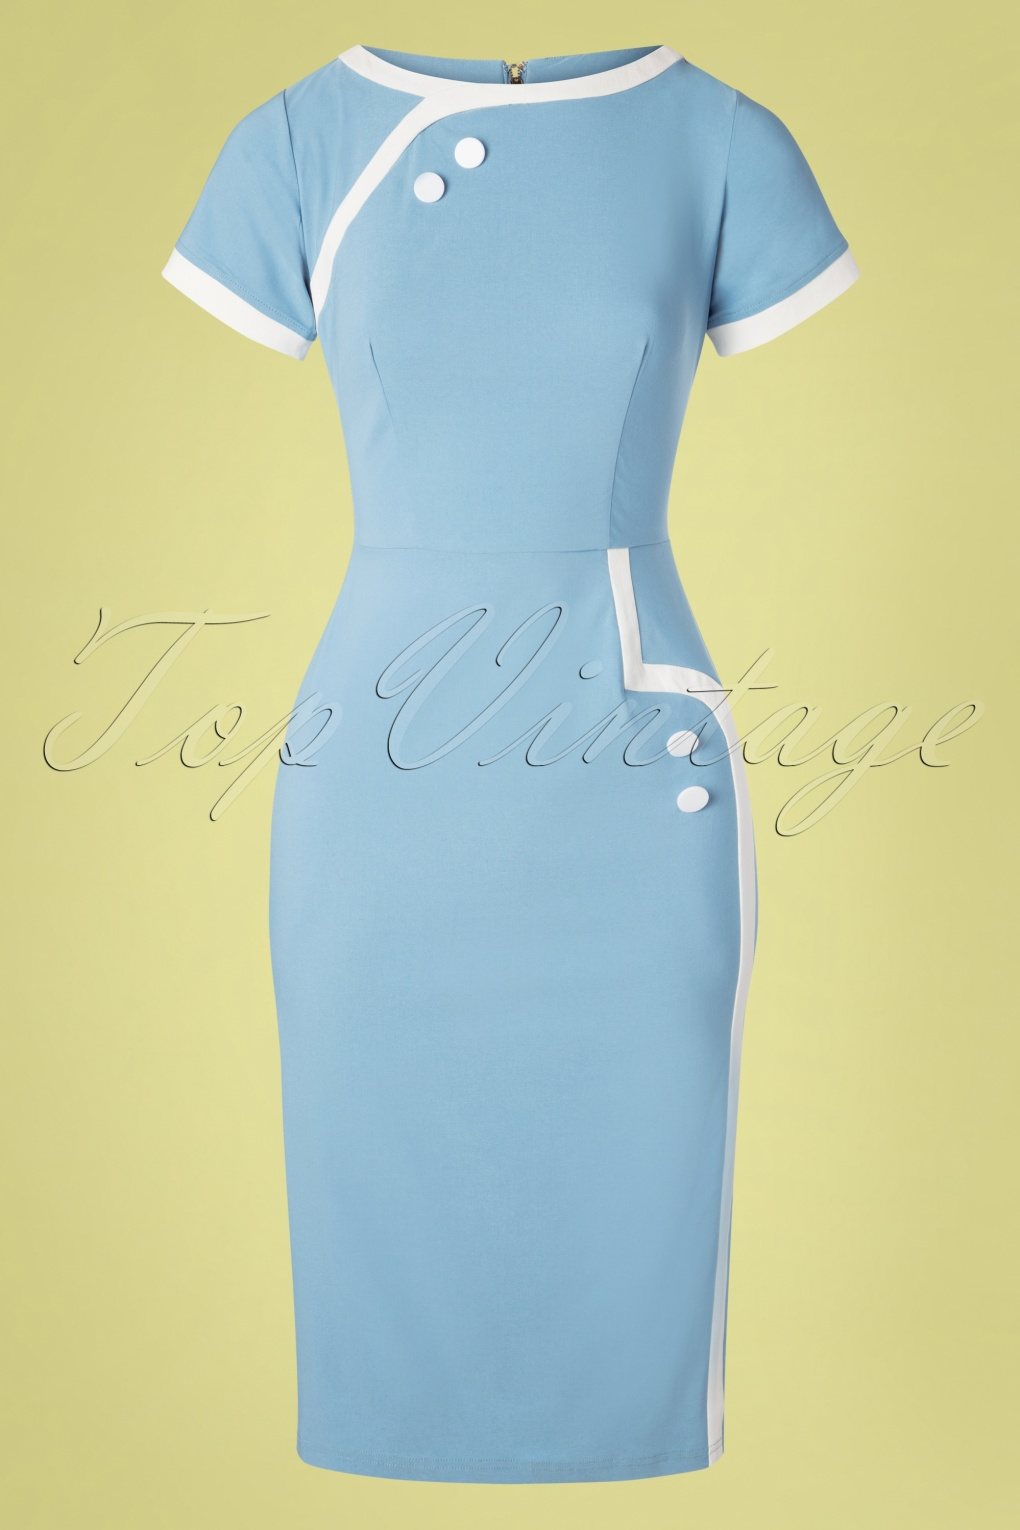 Vintage Cruise Outfits, Vacation Clothing 50s Joanie Pencil Dress in Light Blue �107.19 AT vintagedancer.com